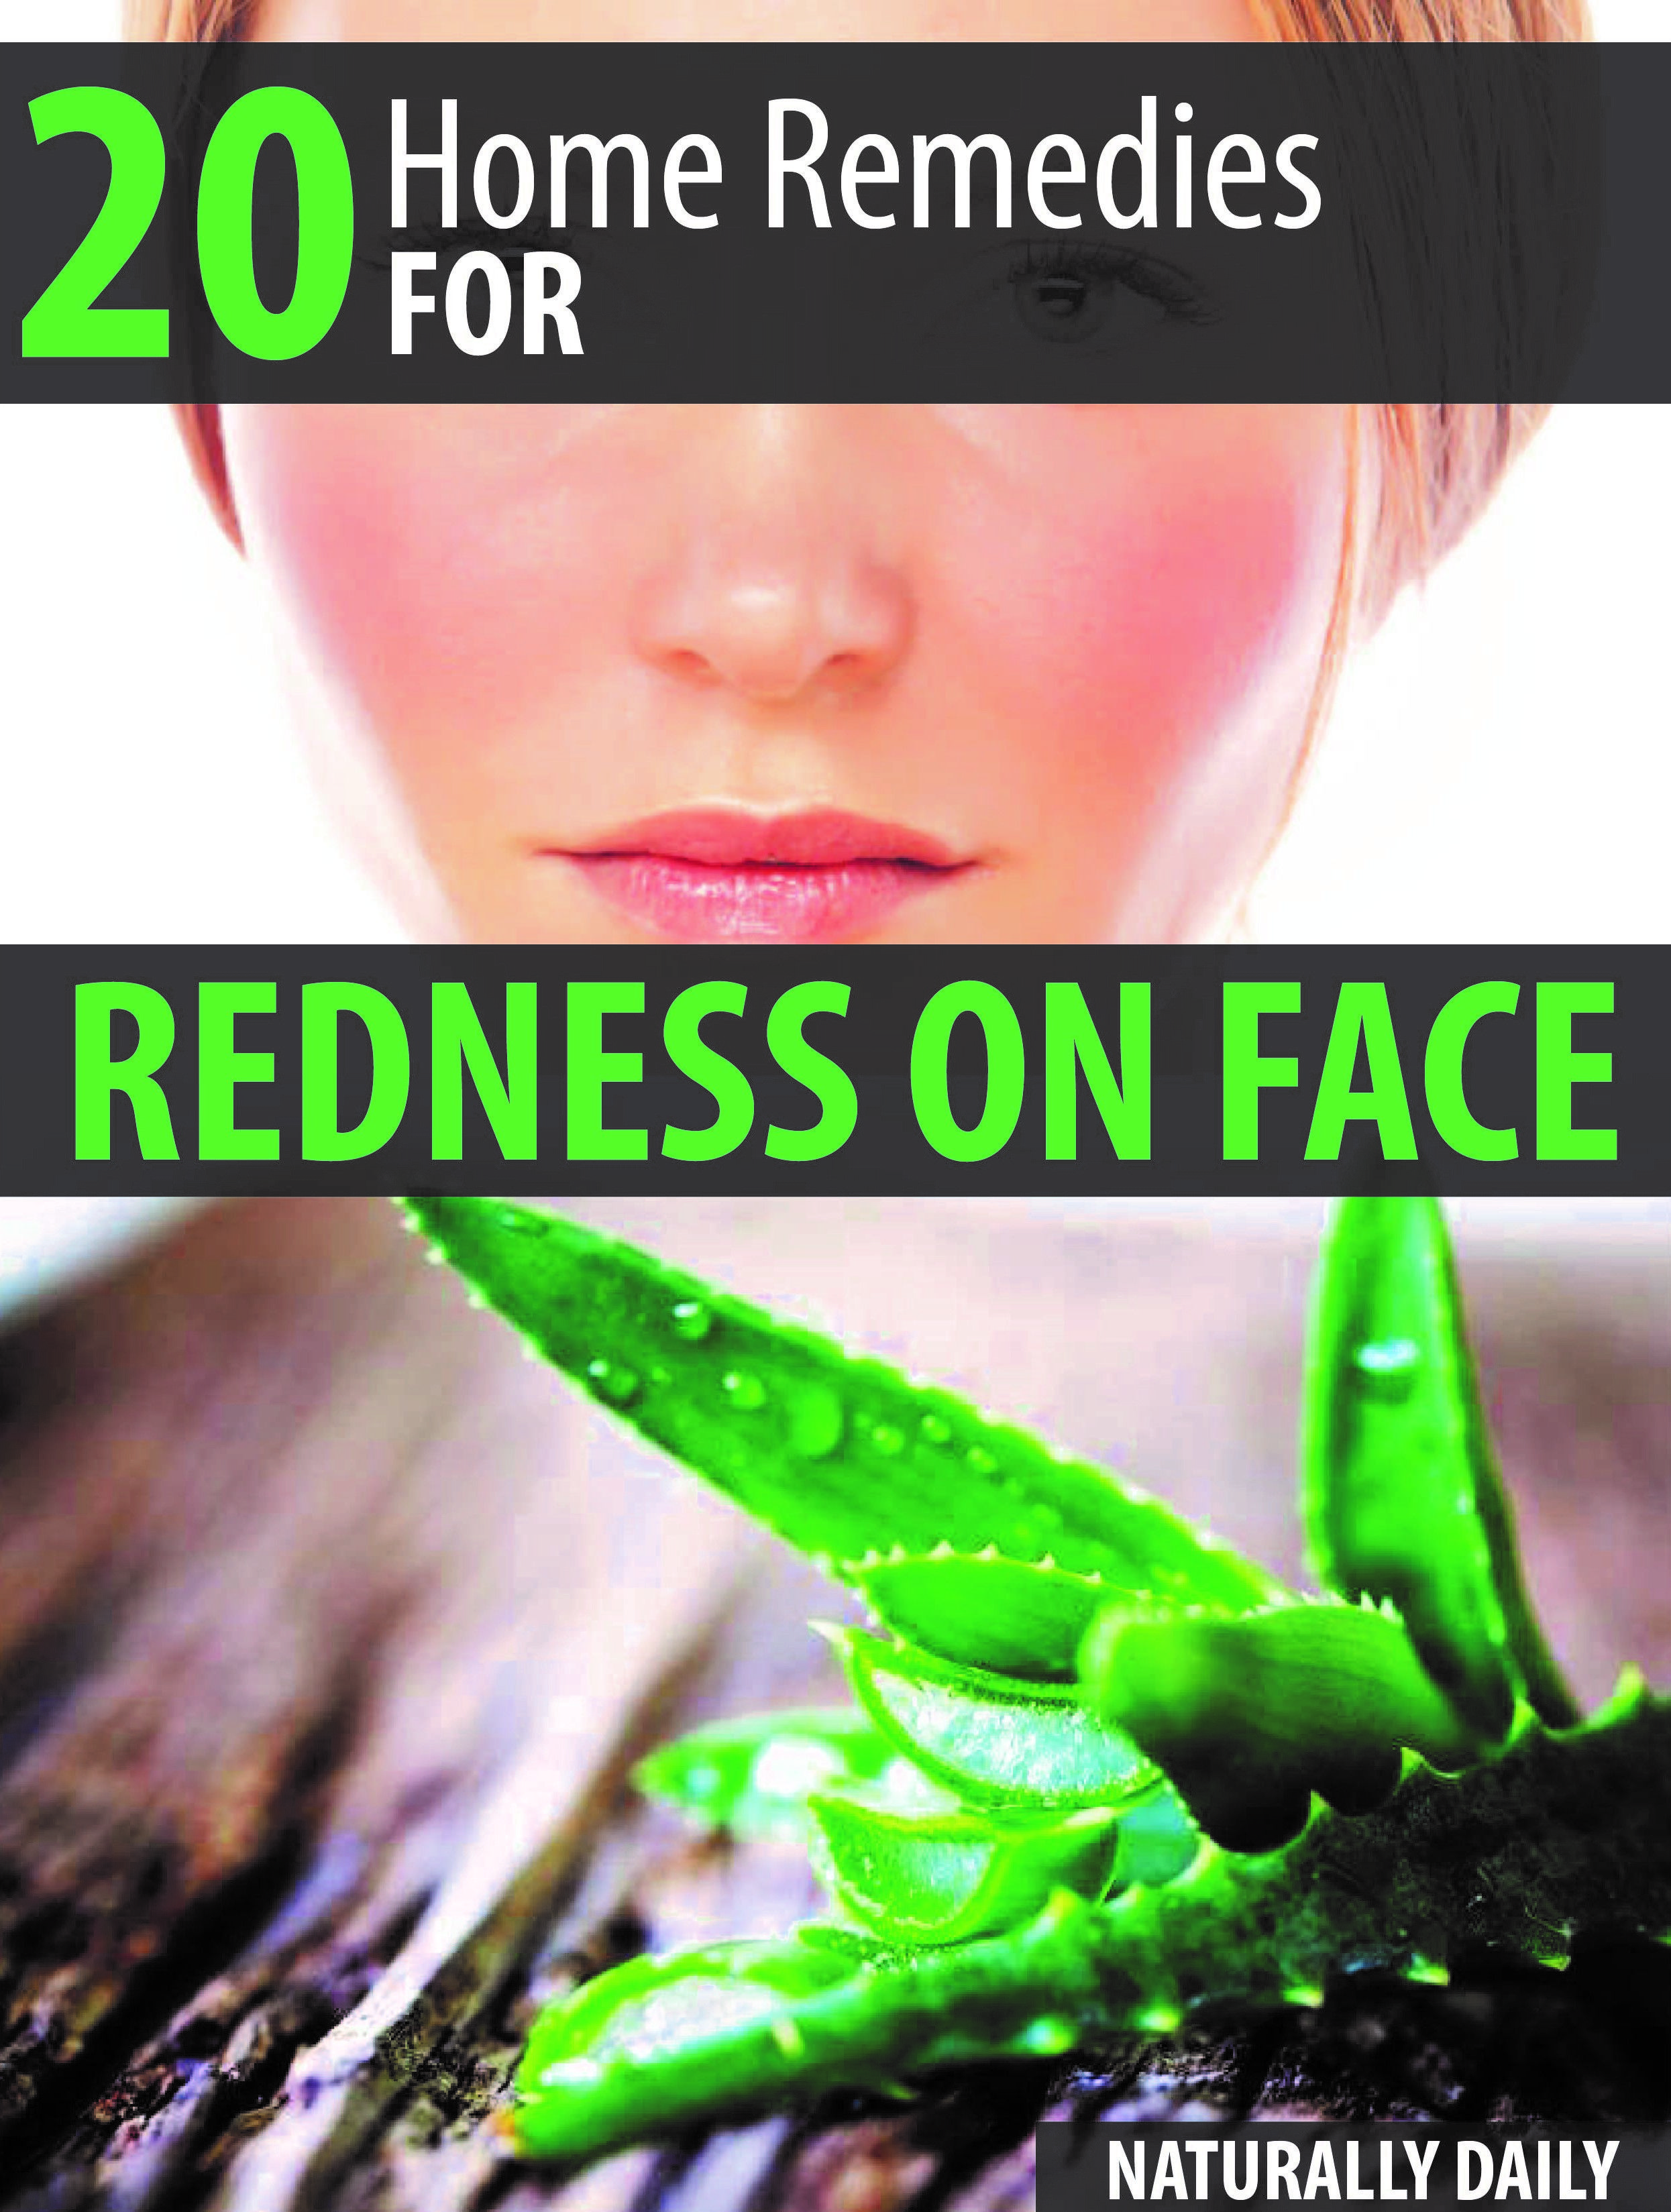 Home remedies for redness on face redness on face red